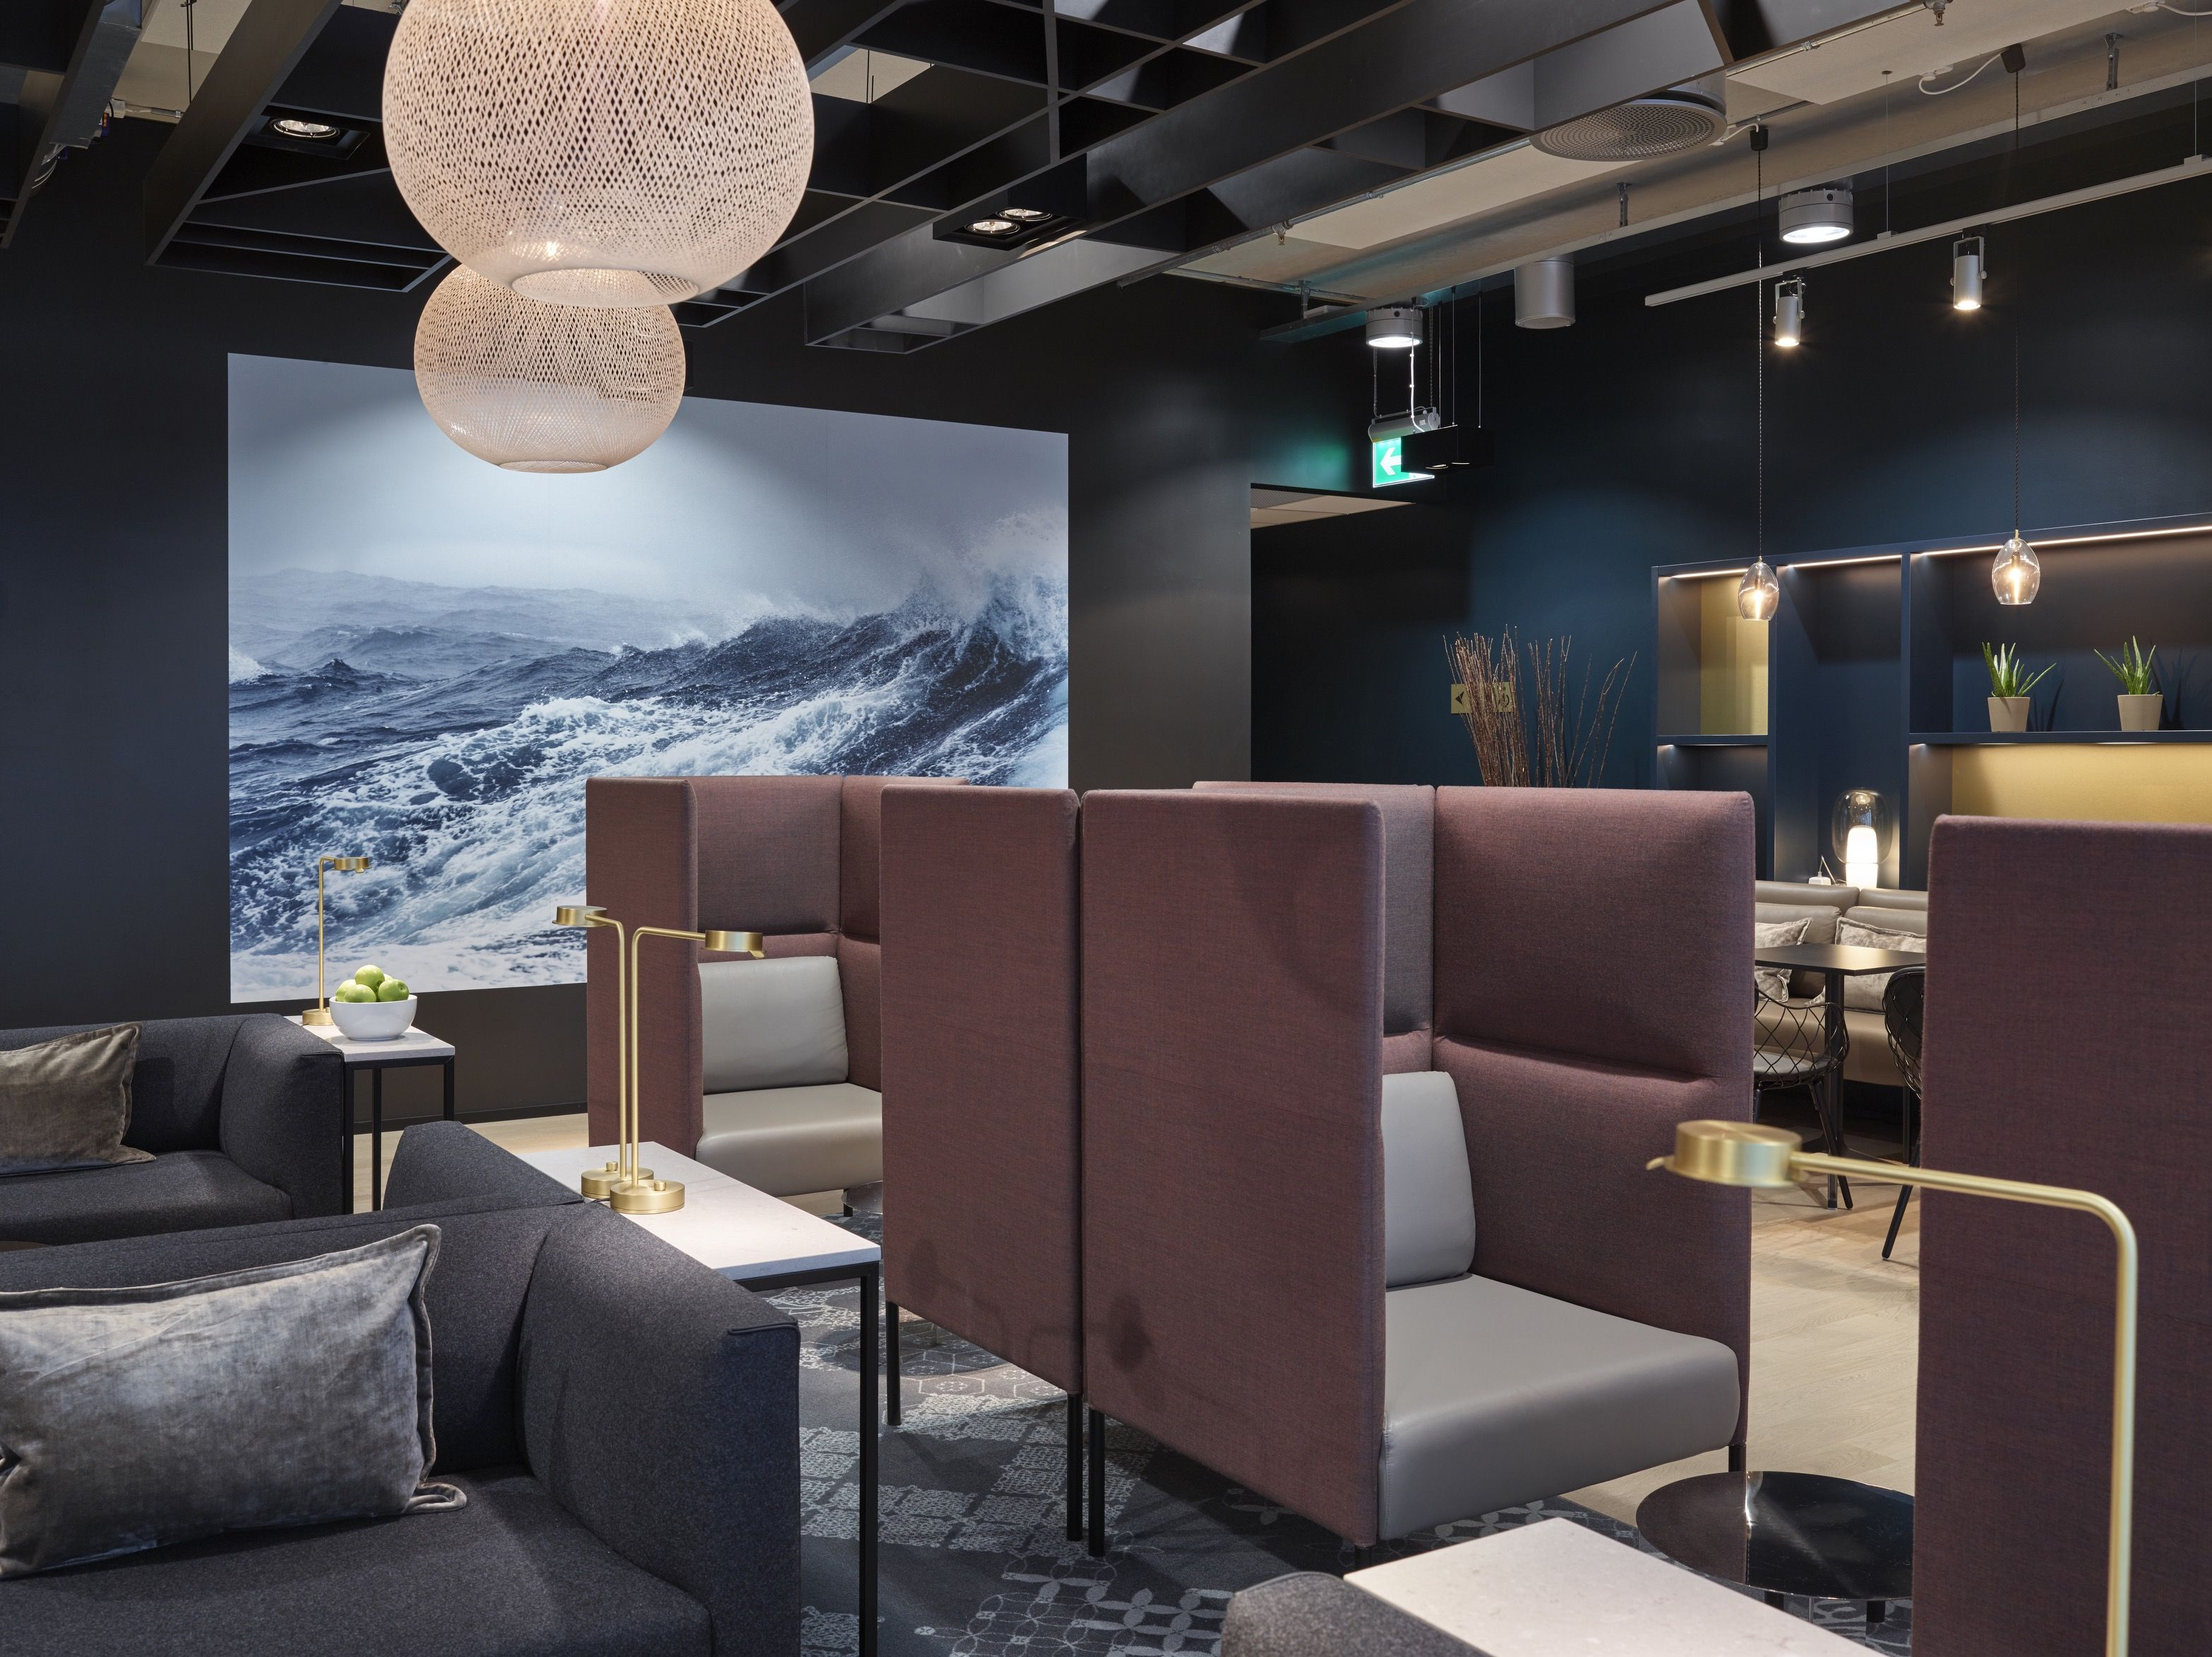 Business Lounge at Stavanger Airport Sola, designed by